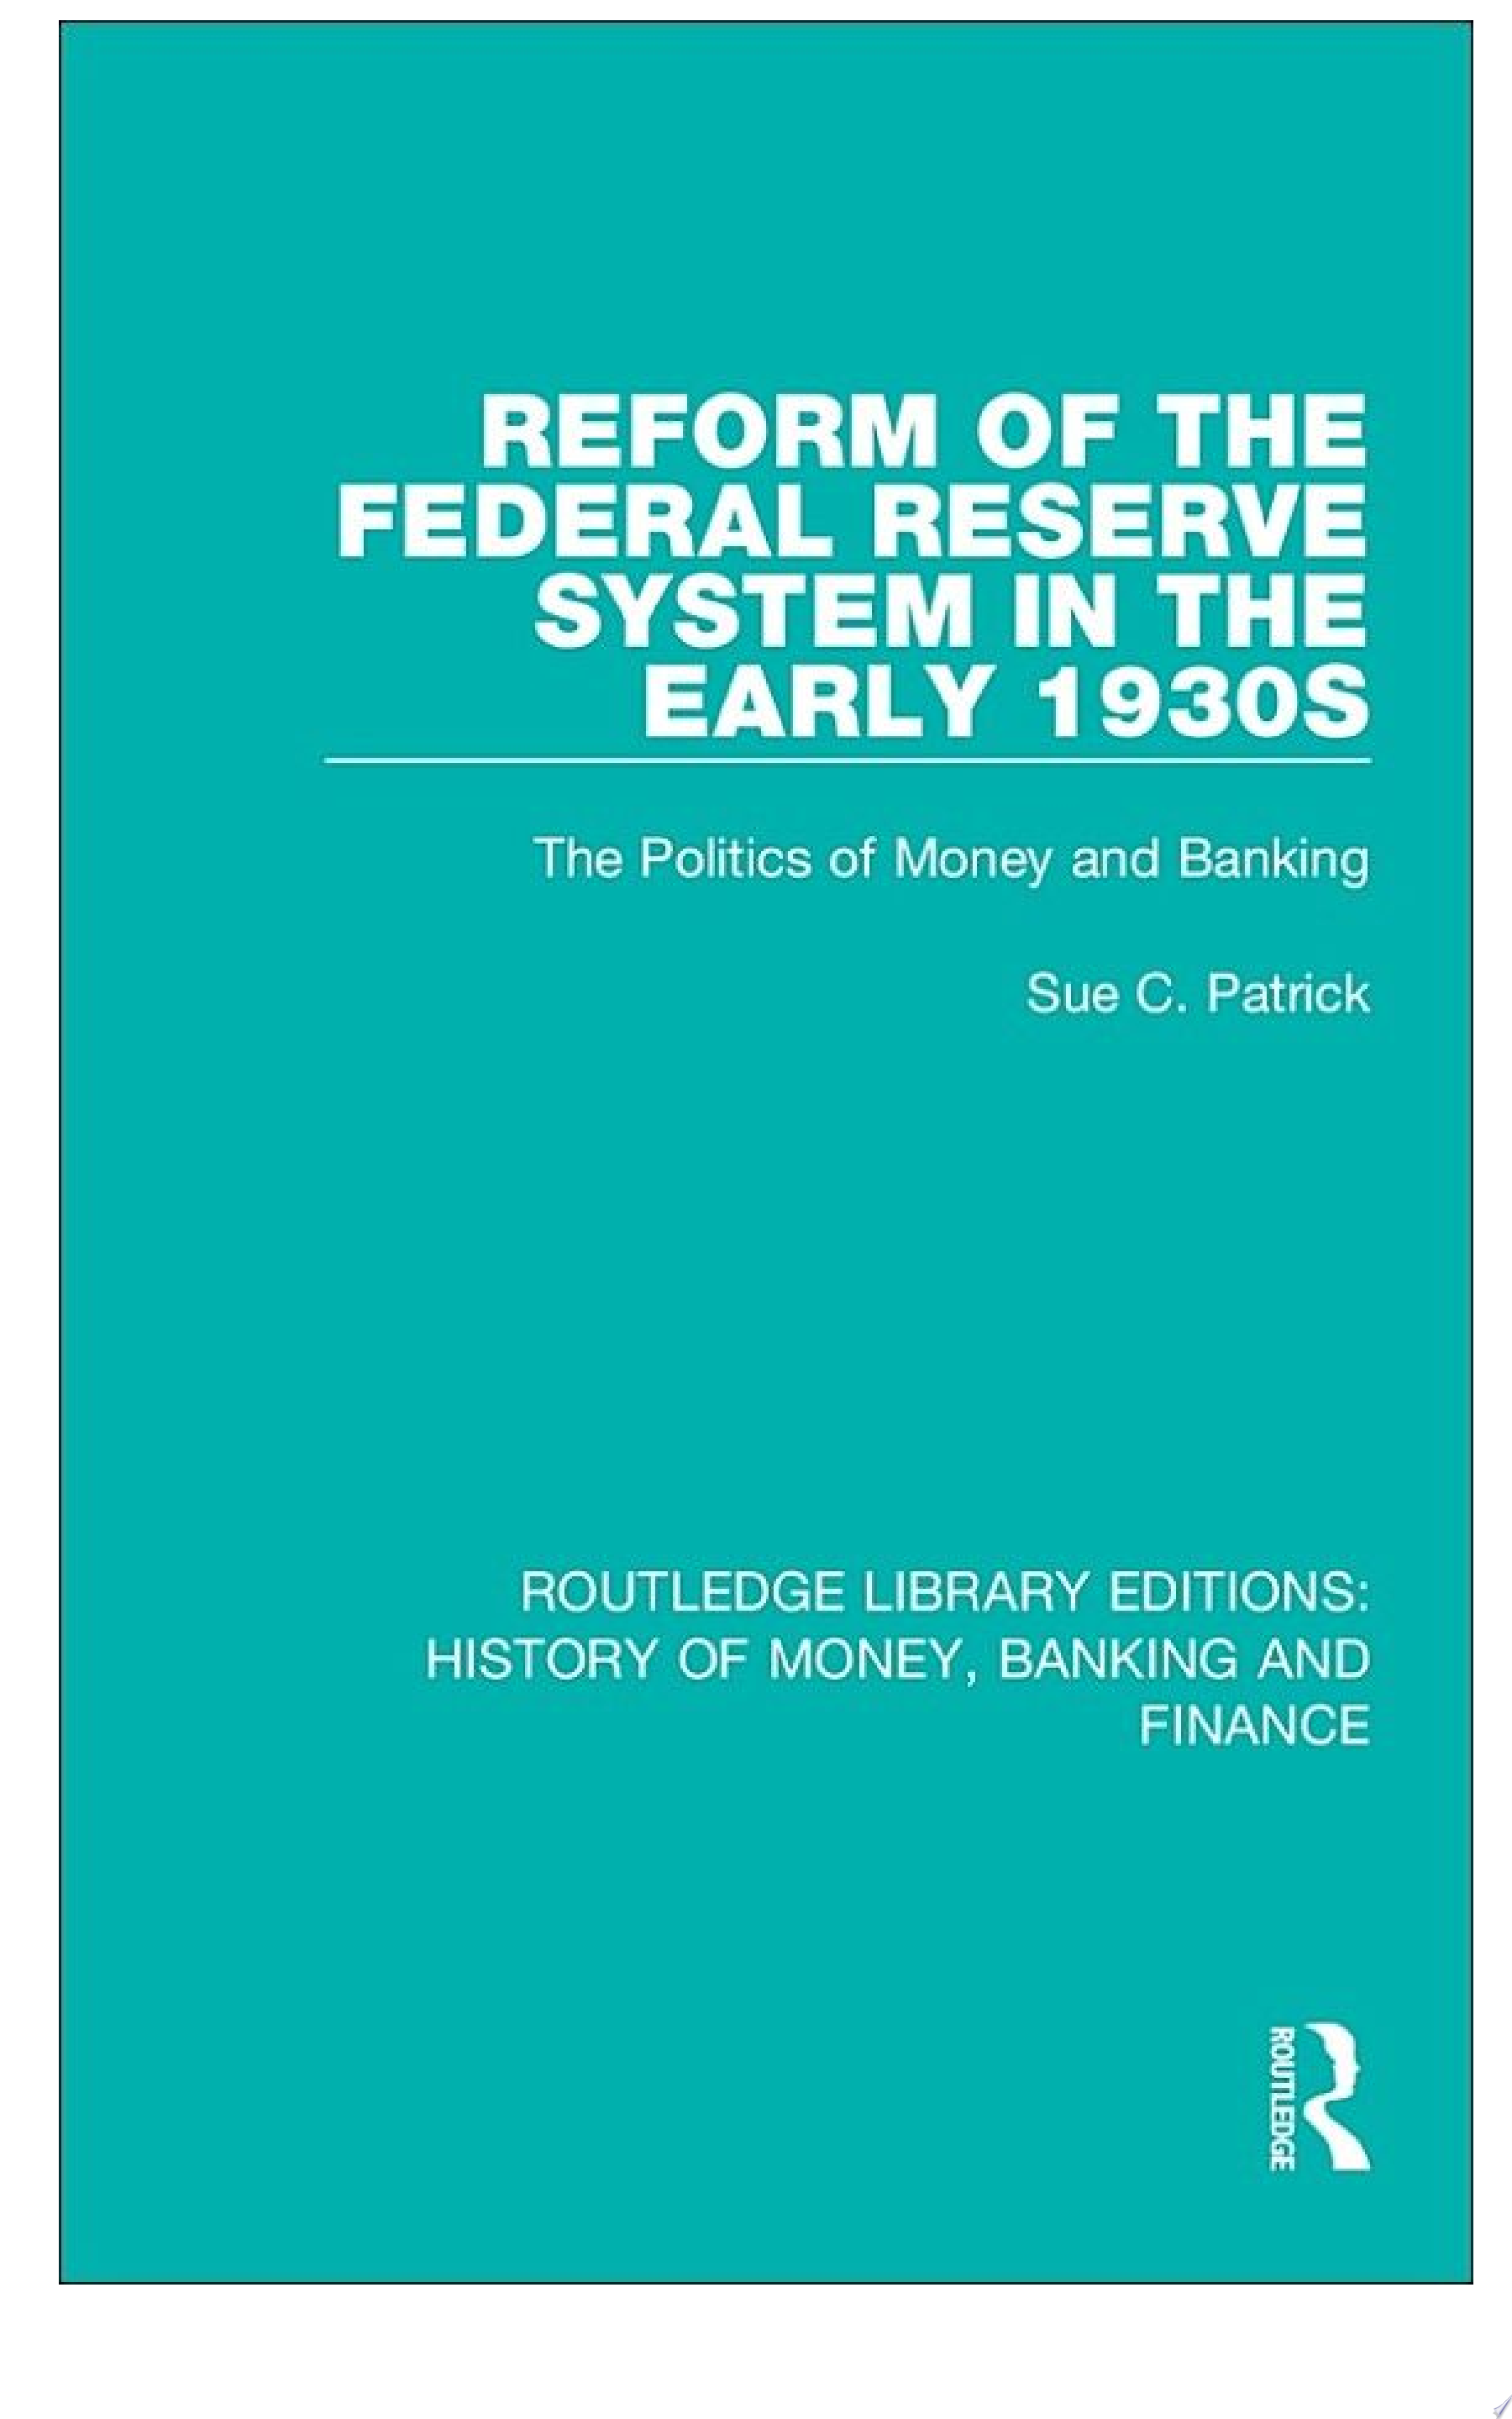 Reform of the Federal Reserve System in the Early 1930s